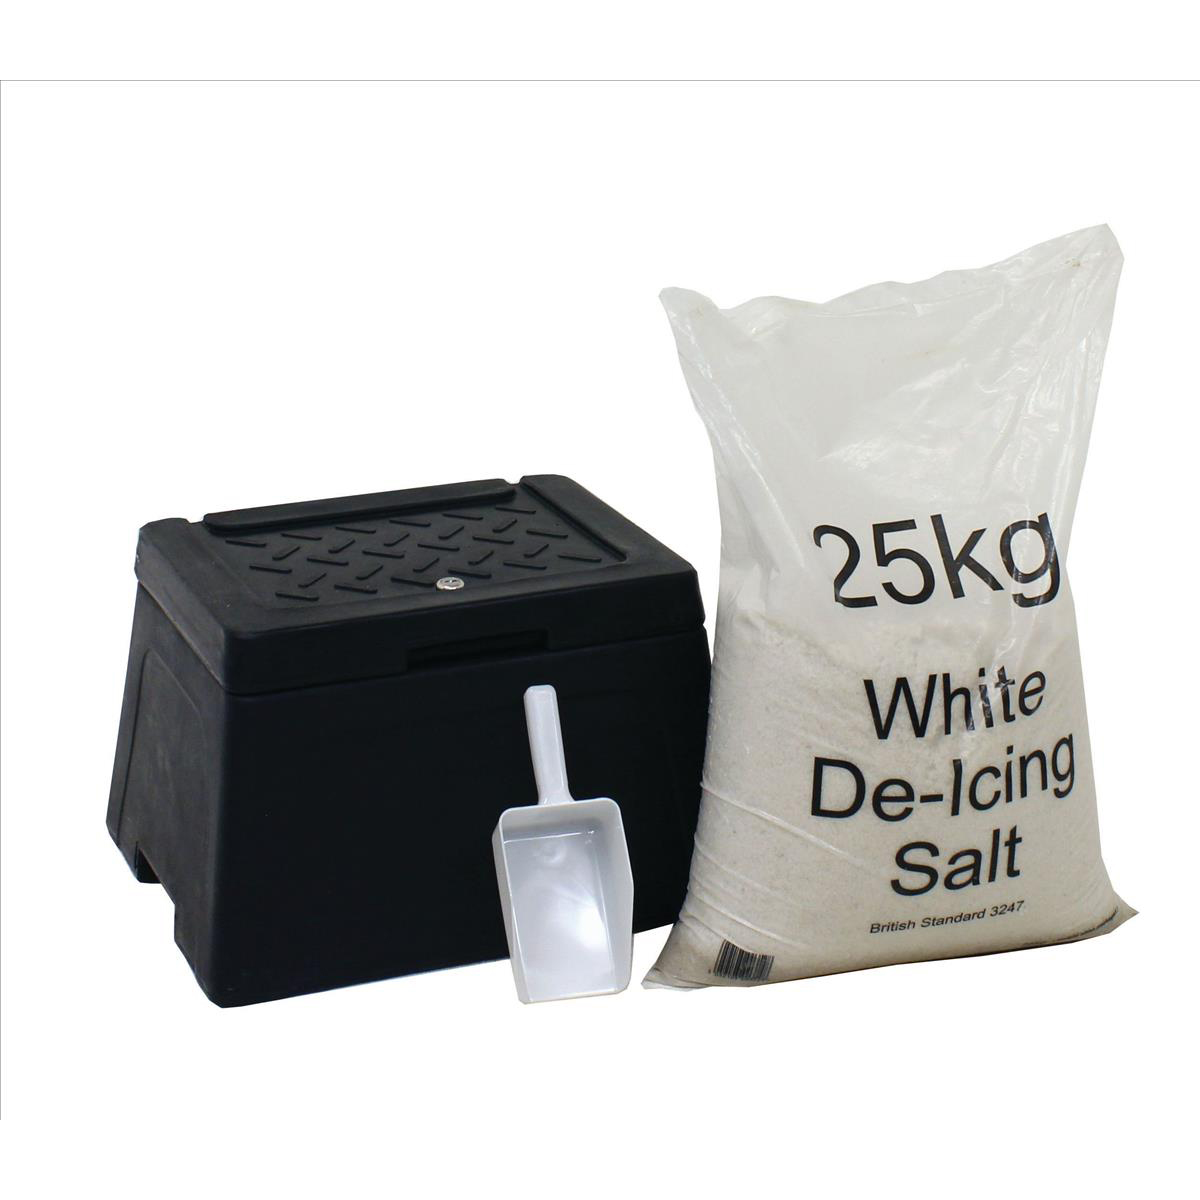 De-Icing Supplies Mini Grit Bin Lockable with Scoop and 25kg Salt Bag